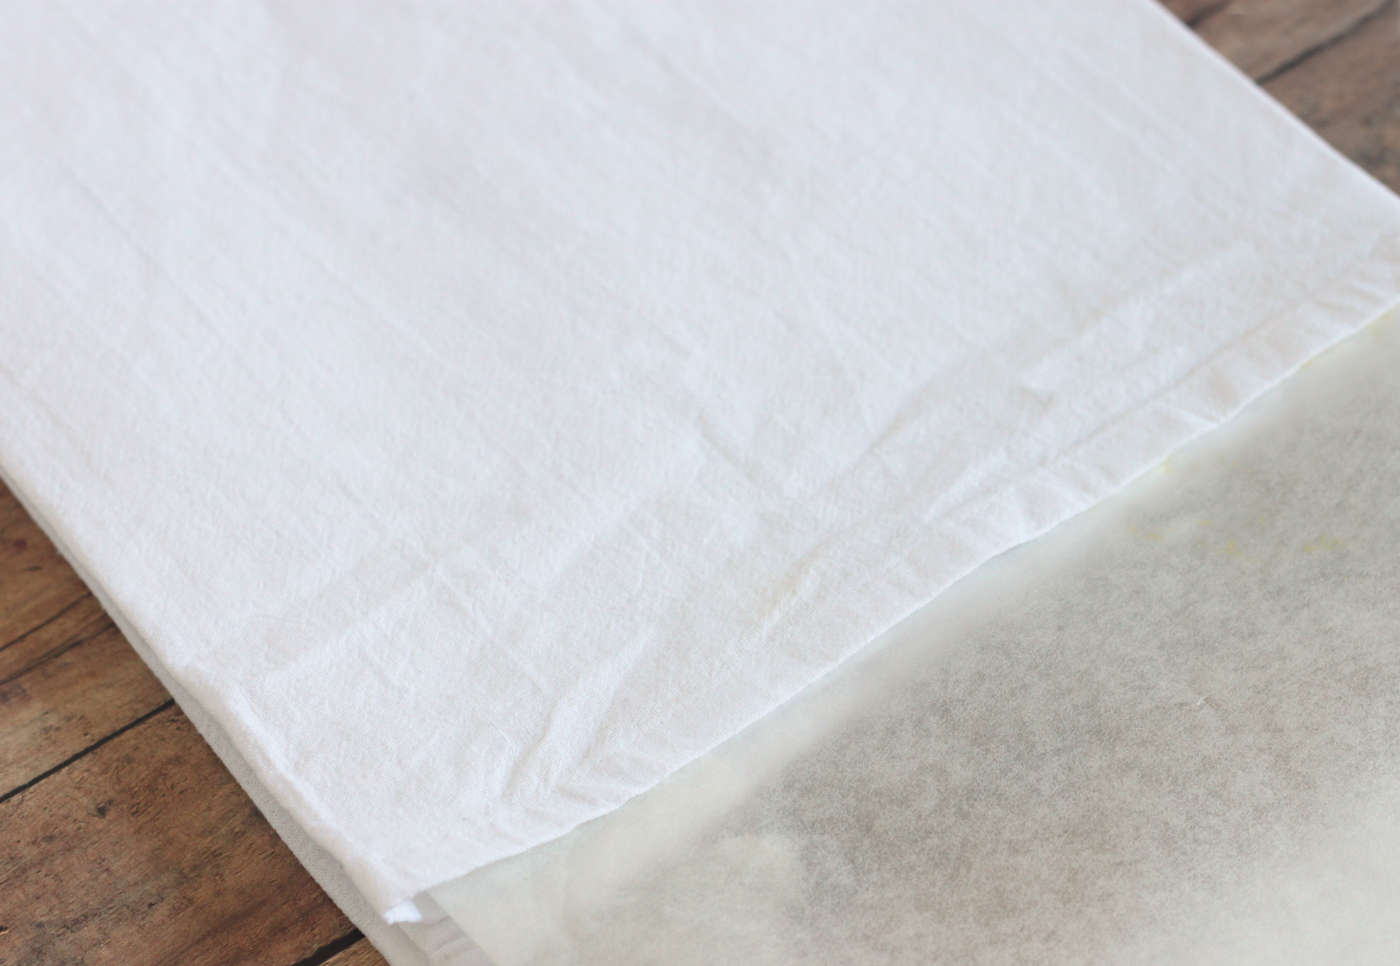 place wax paper in between layers of a tea towel